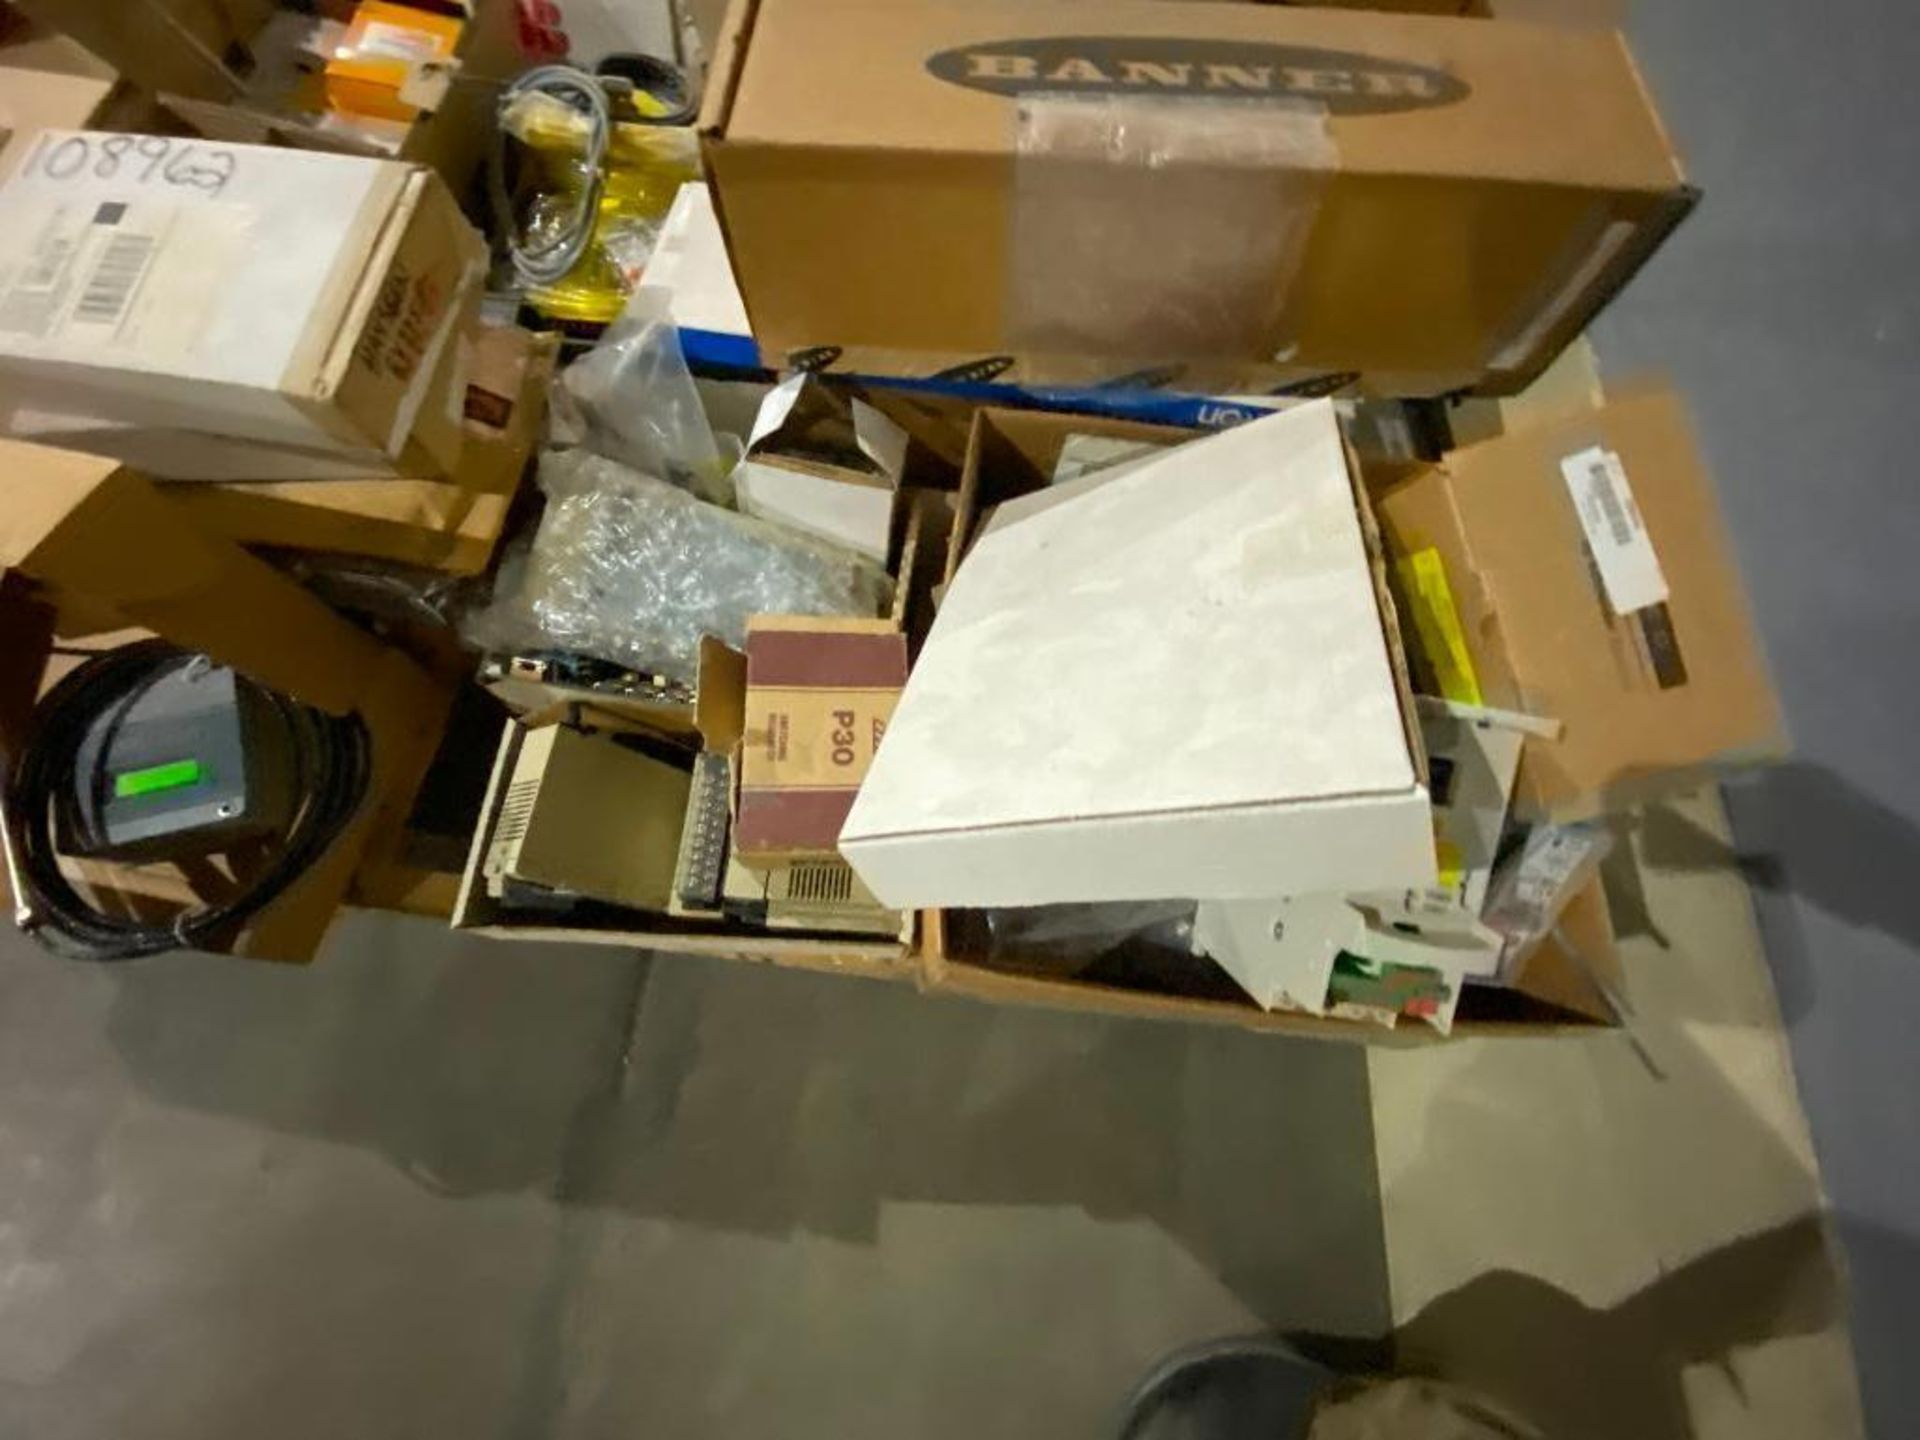 pallet of ABB parts, controllers, cabinets, and control boards - Image 7 of 8